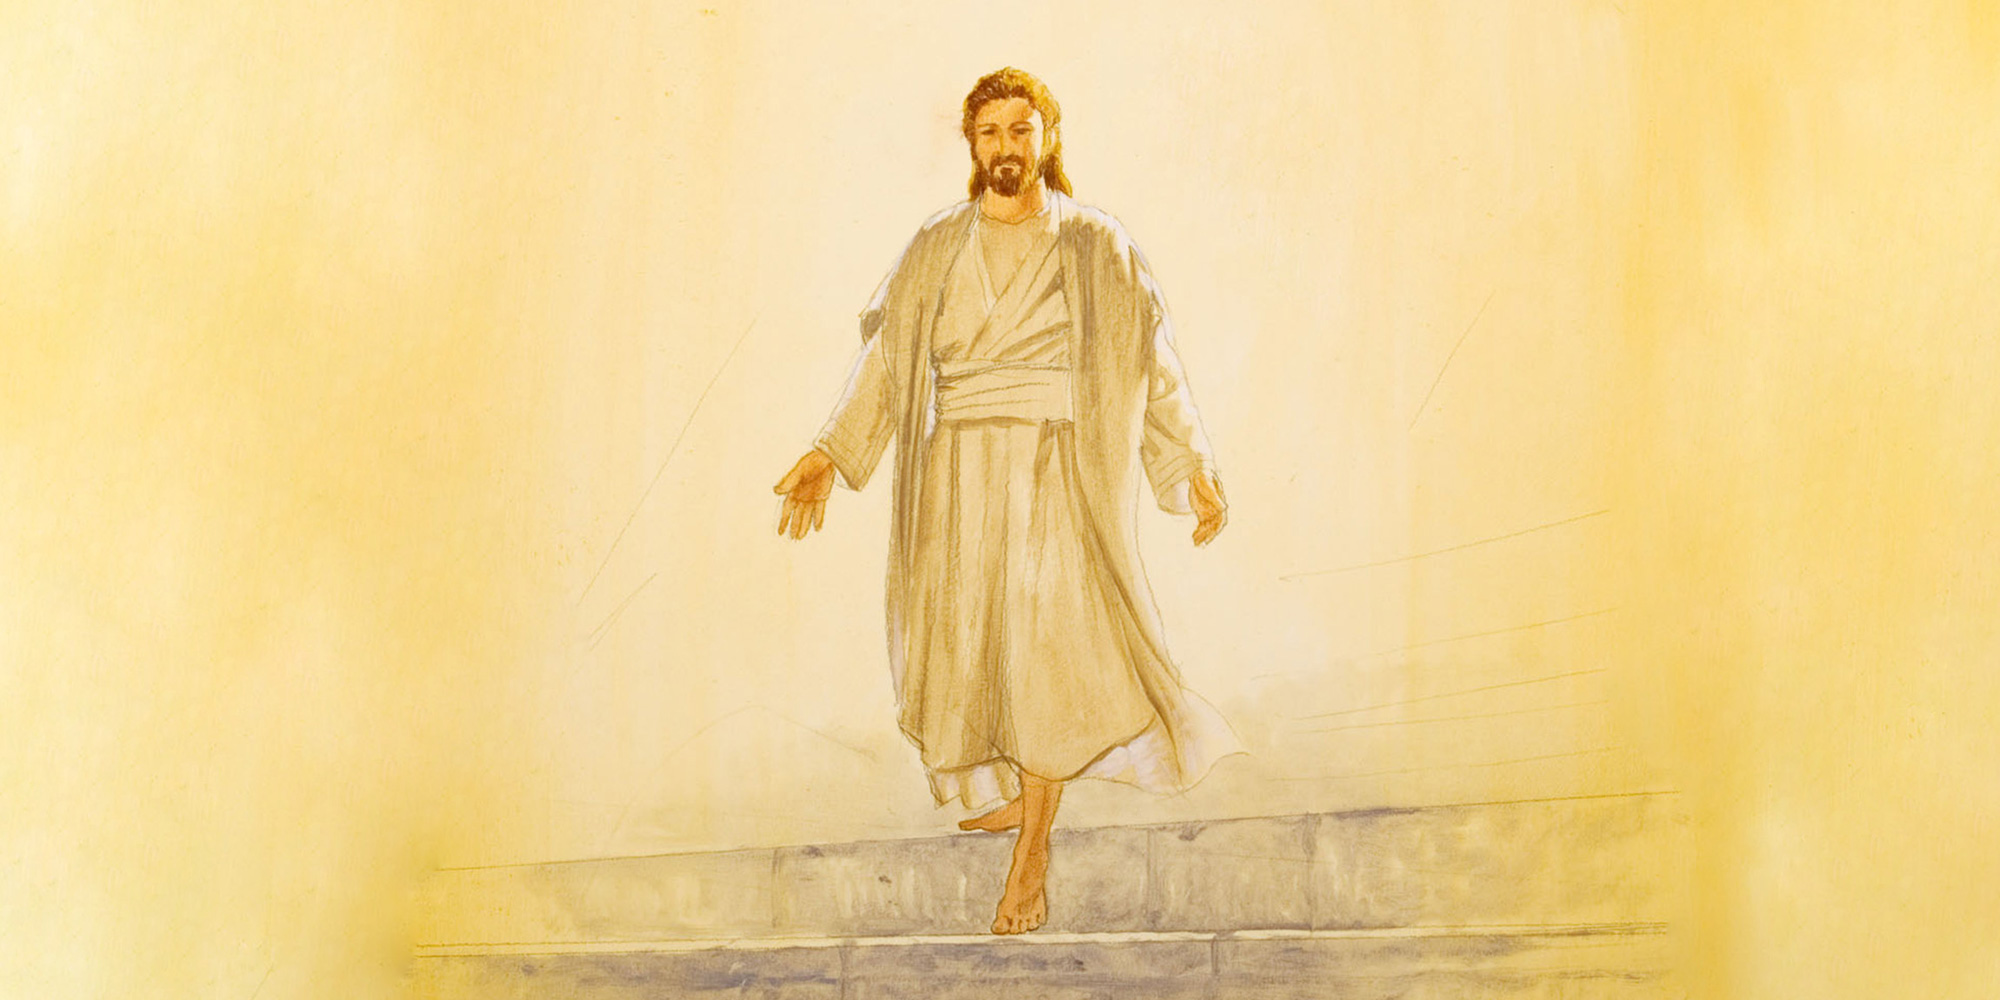 Jesus by James Fullmer